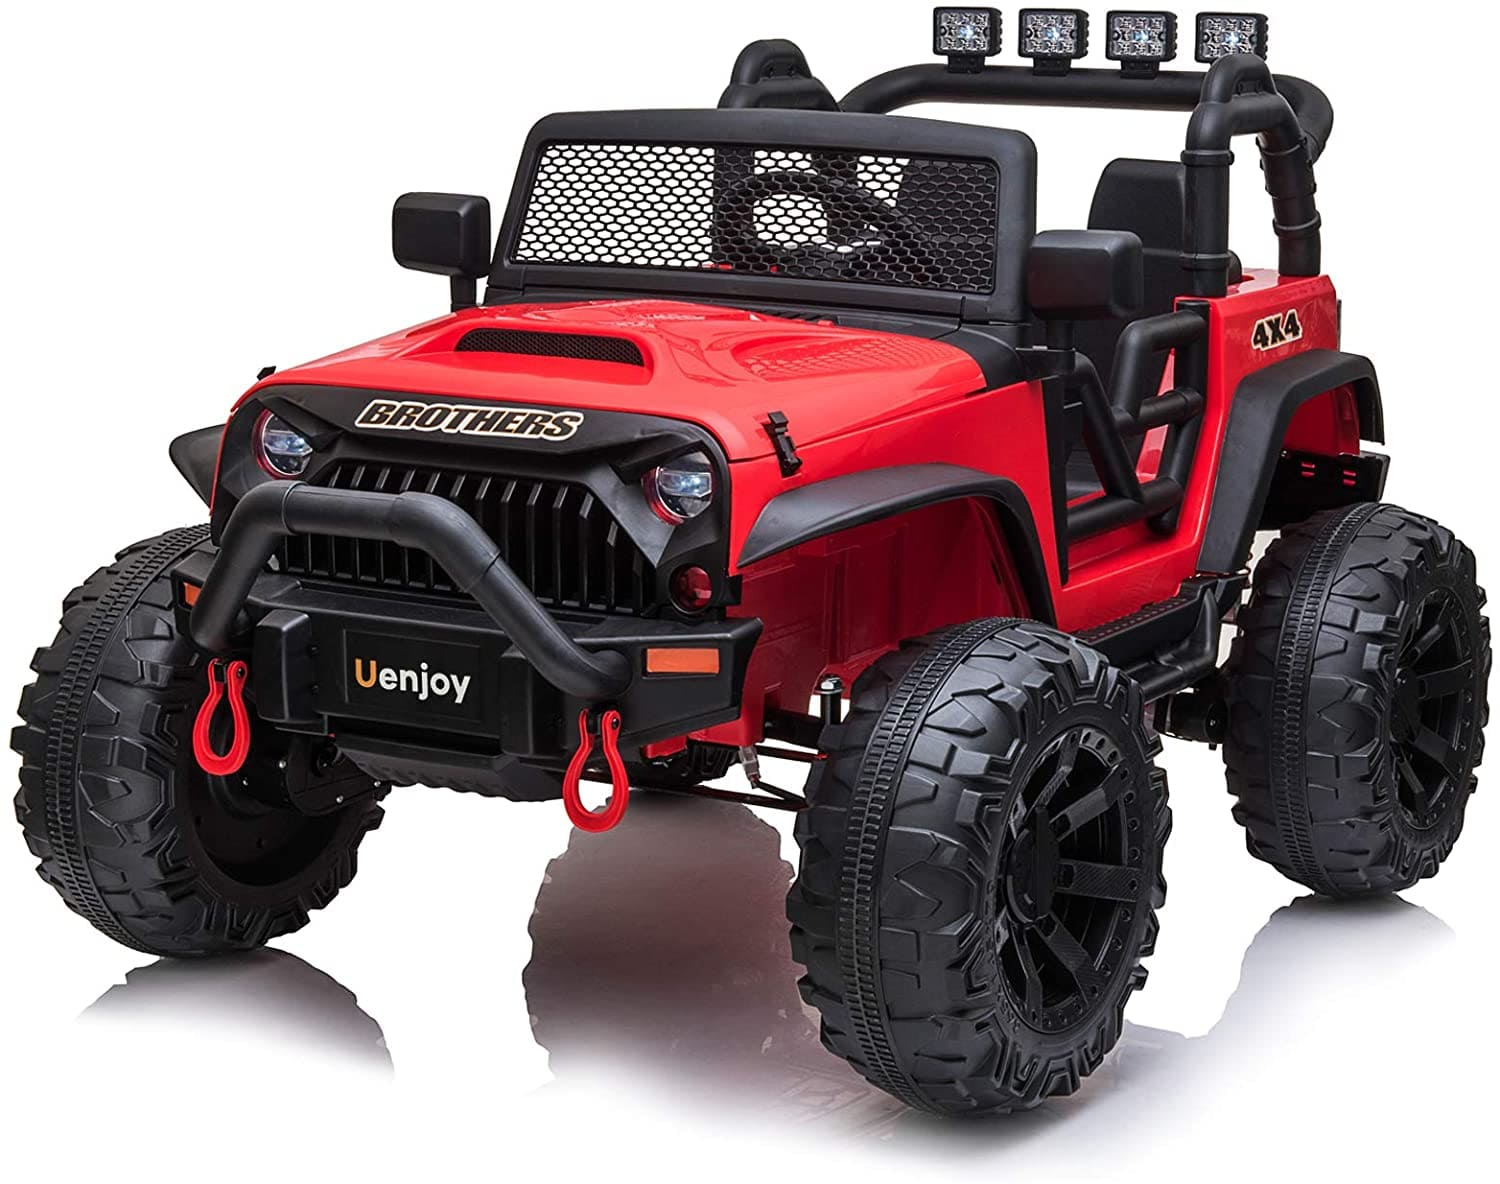 Jeep Style 12v 2-Seater Kids Ride-on Car